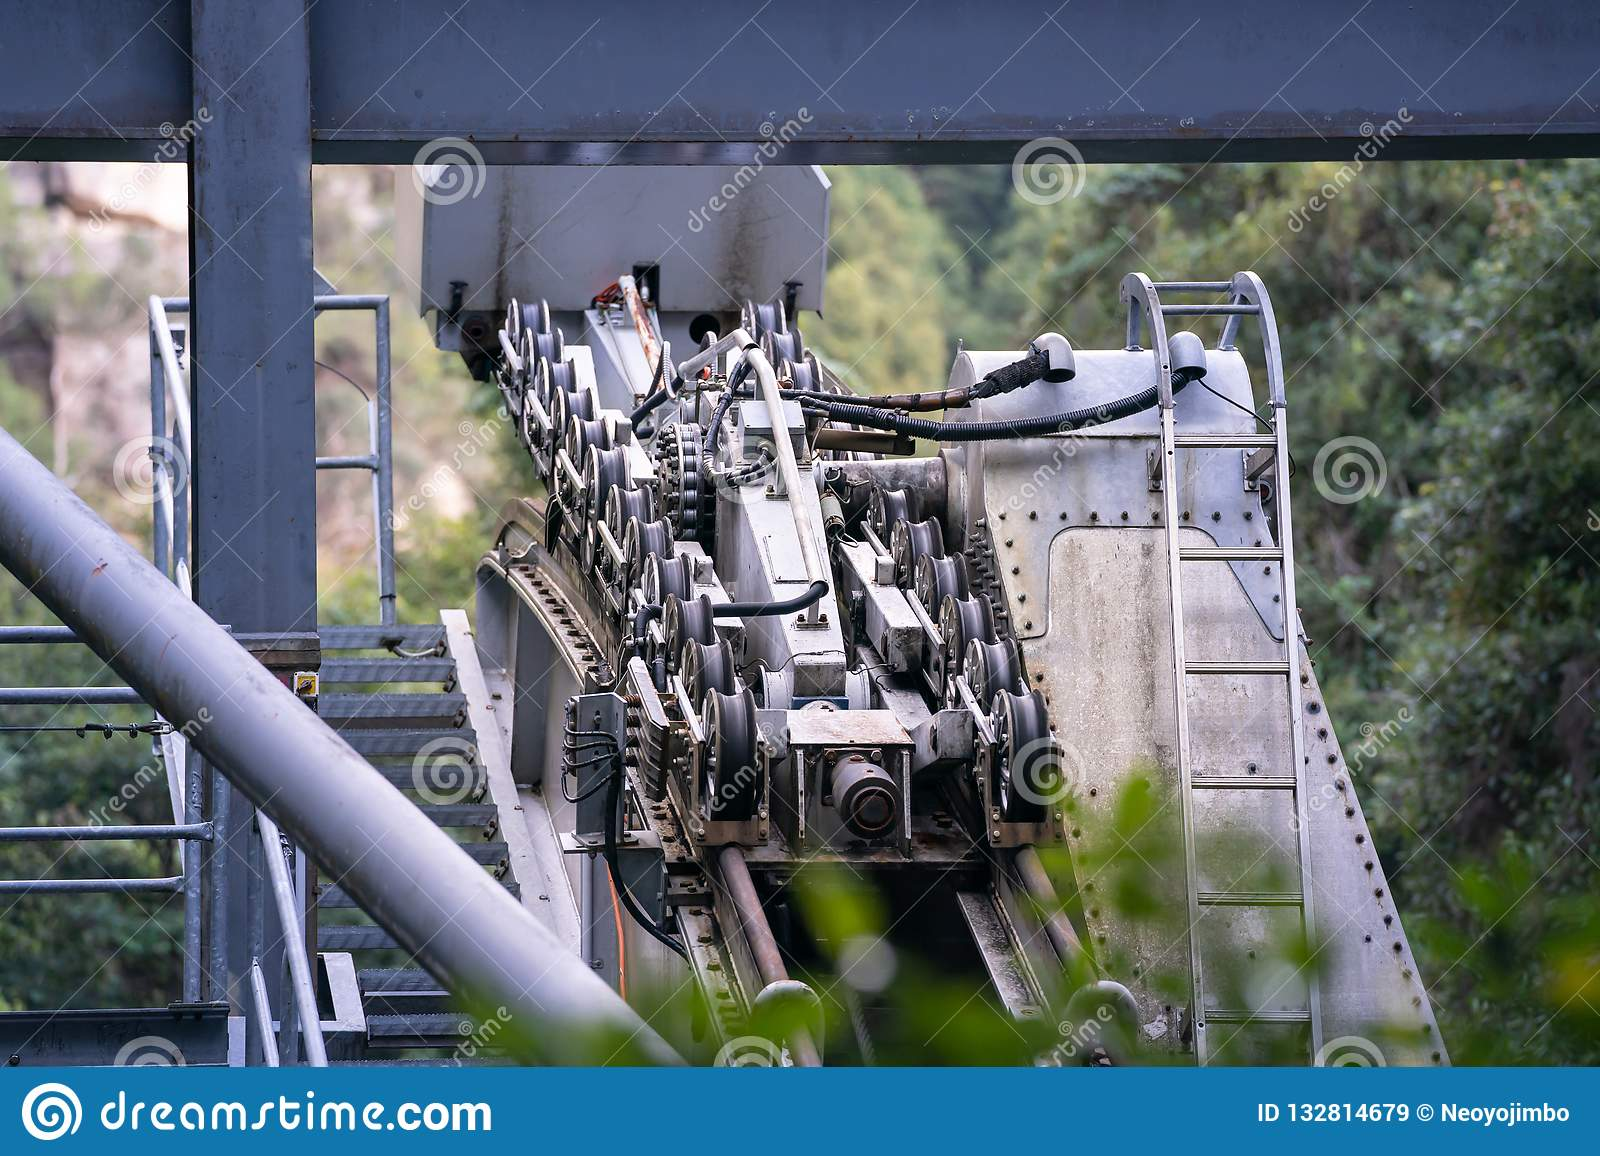 The pulley engine gears of ropeway on a cabins or funicular railway.